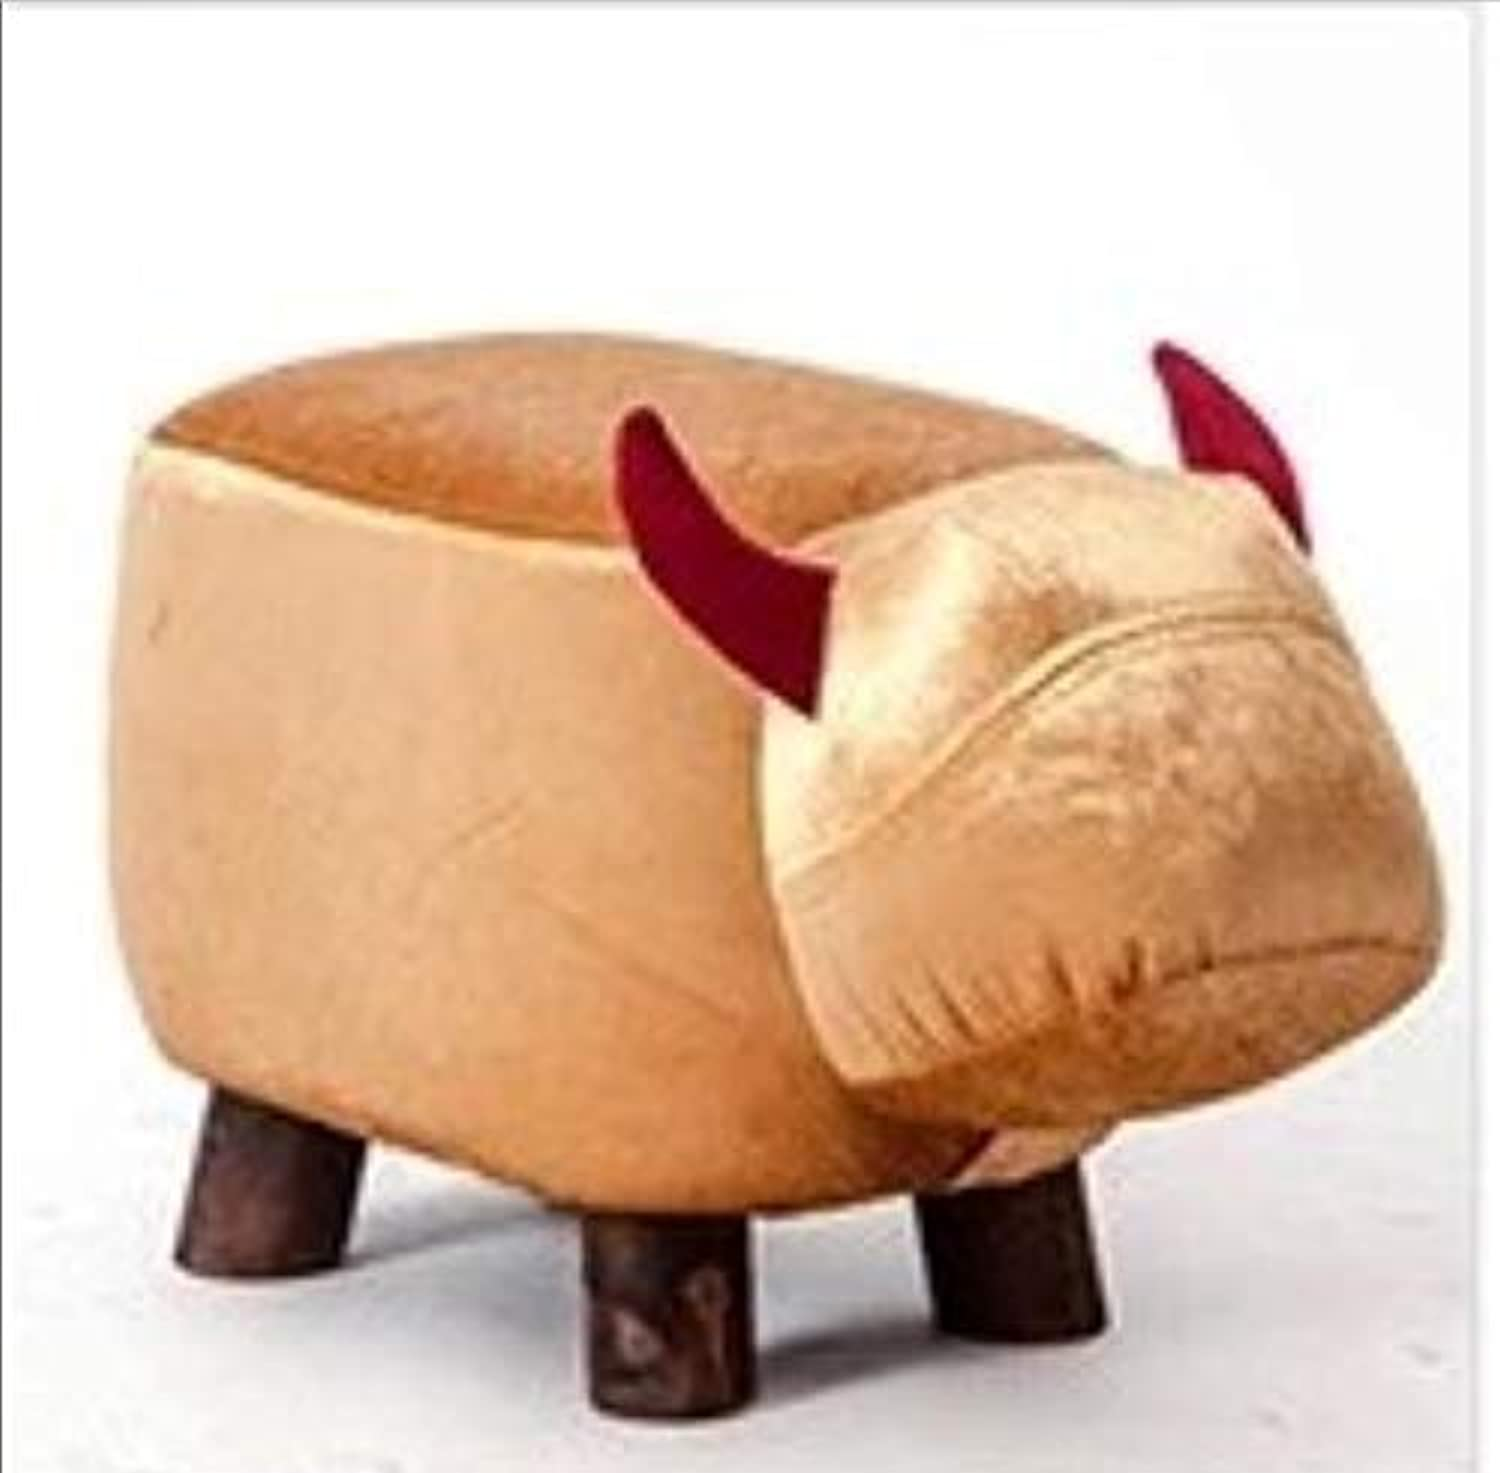 Leather Sofa shoes Stool Pouf Chair Bean Bag Kid Toys Storage Footstool Solid Wood Nordic Home Deco Furniture,B